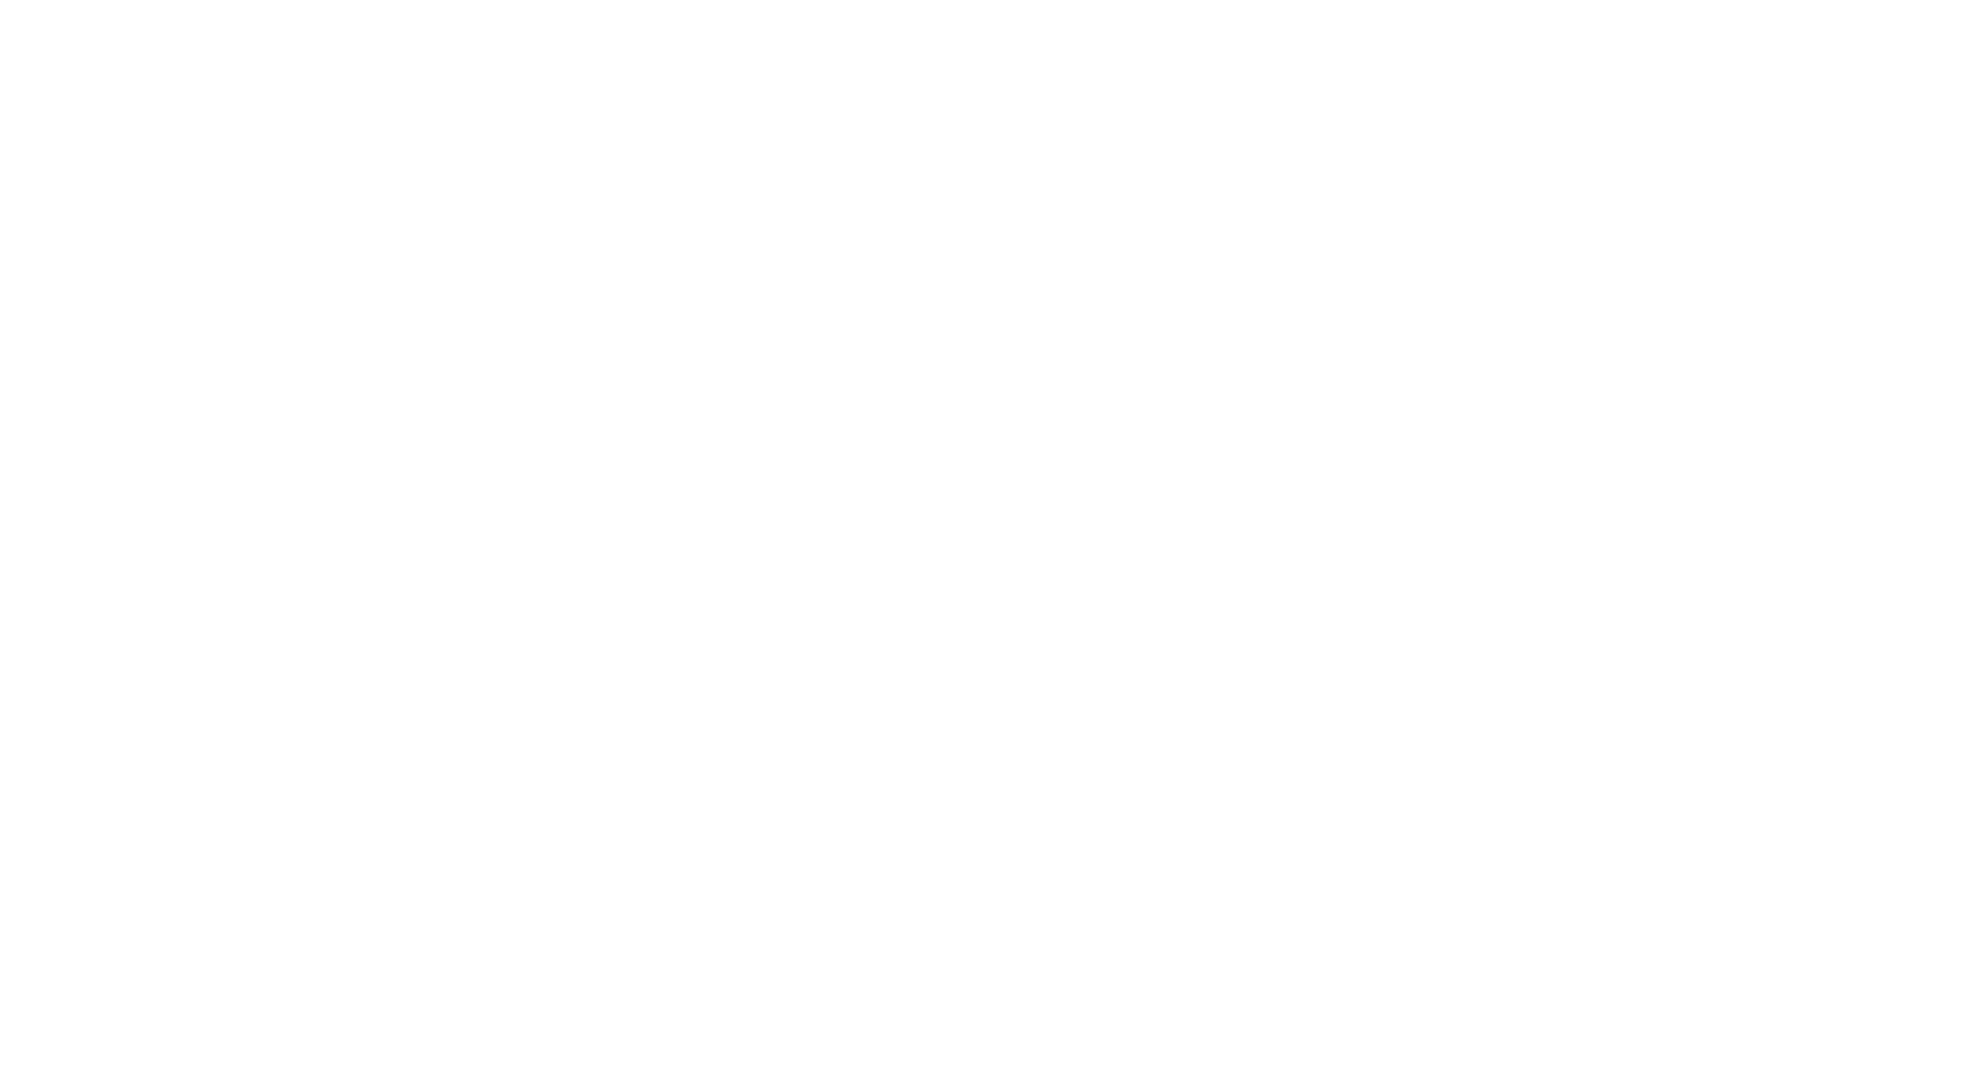 Smart Working accelerator